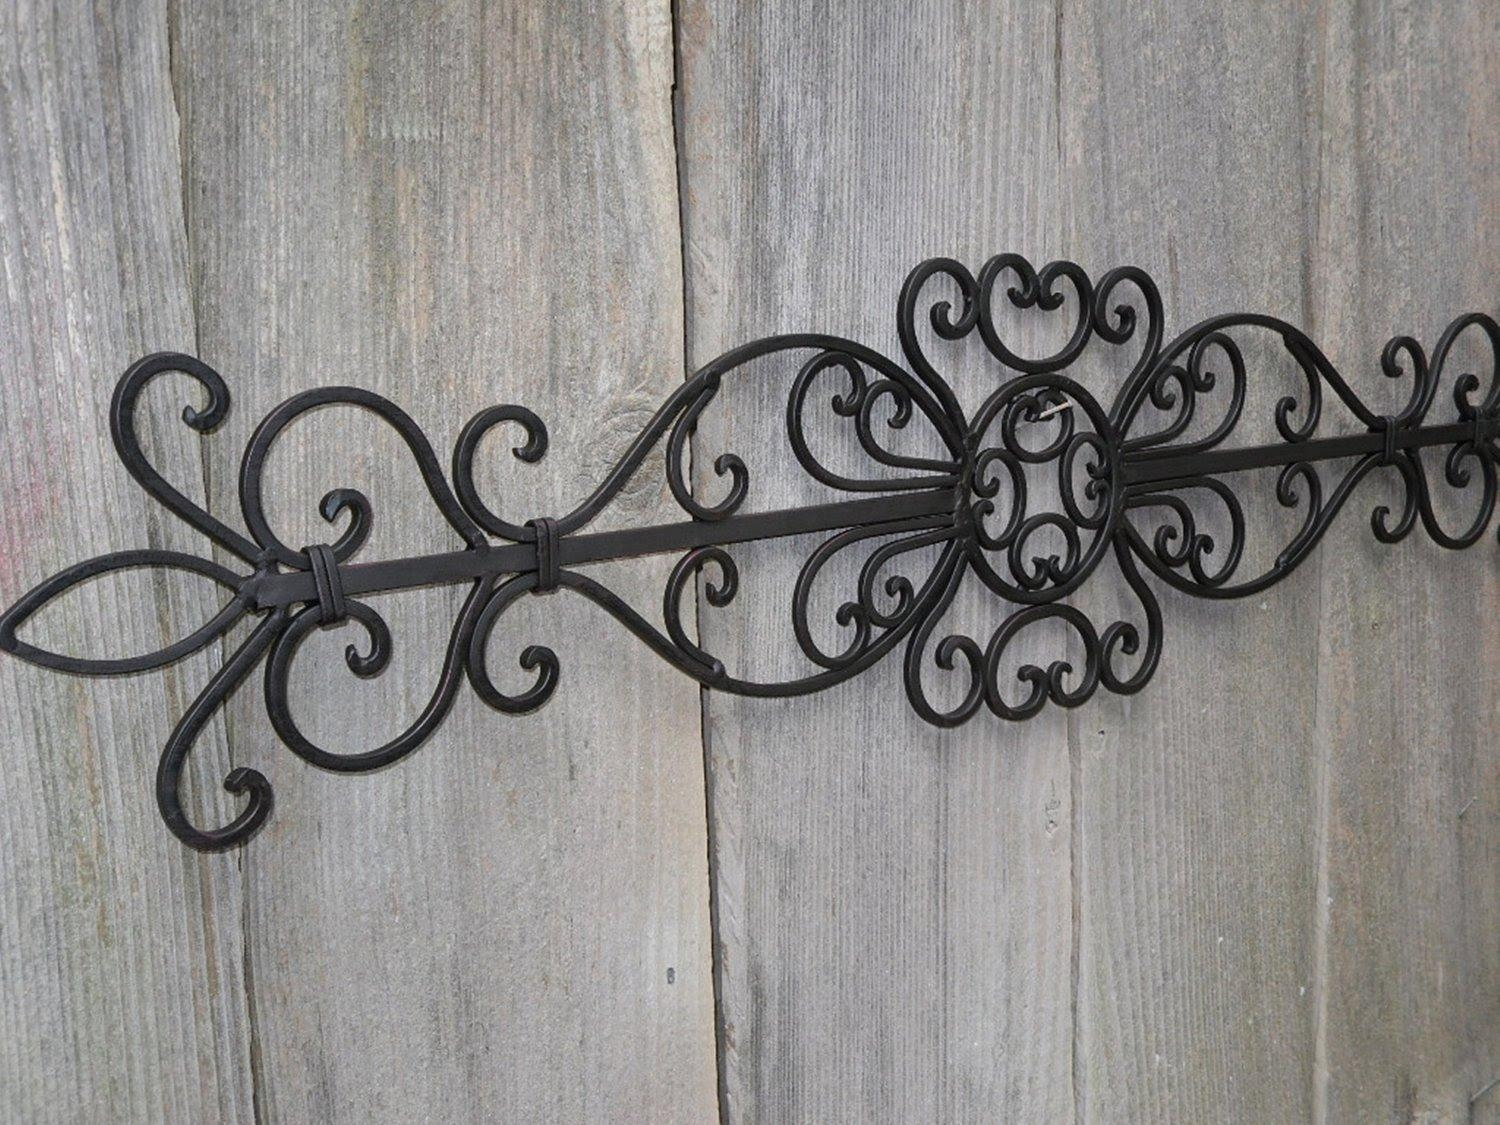 Garden Wall Decor Wrought Iron – Home Design And Decorating With Swirl Metal Wall Art (View 17 of 20)